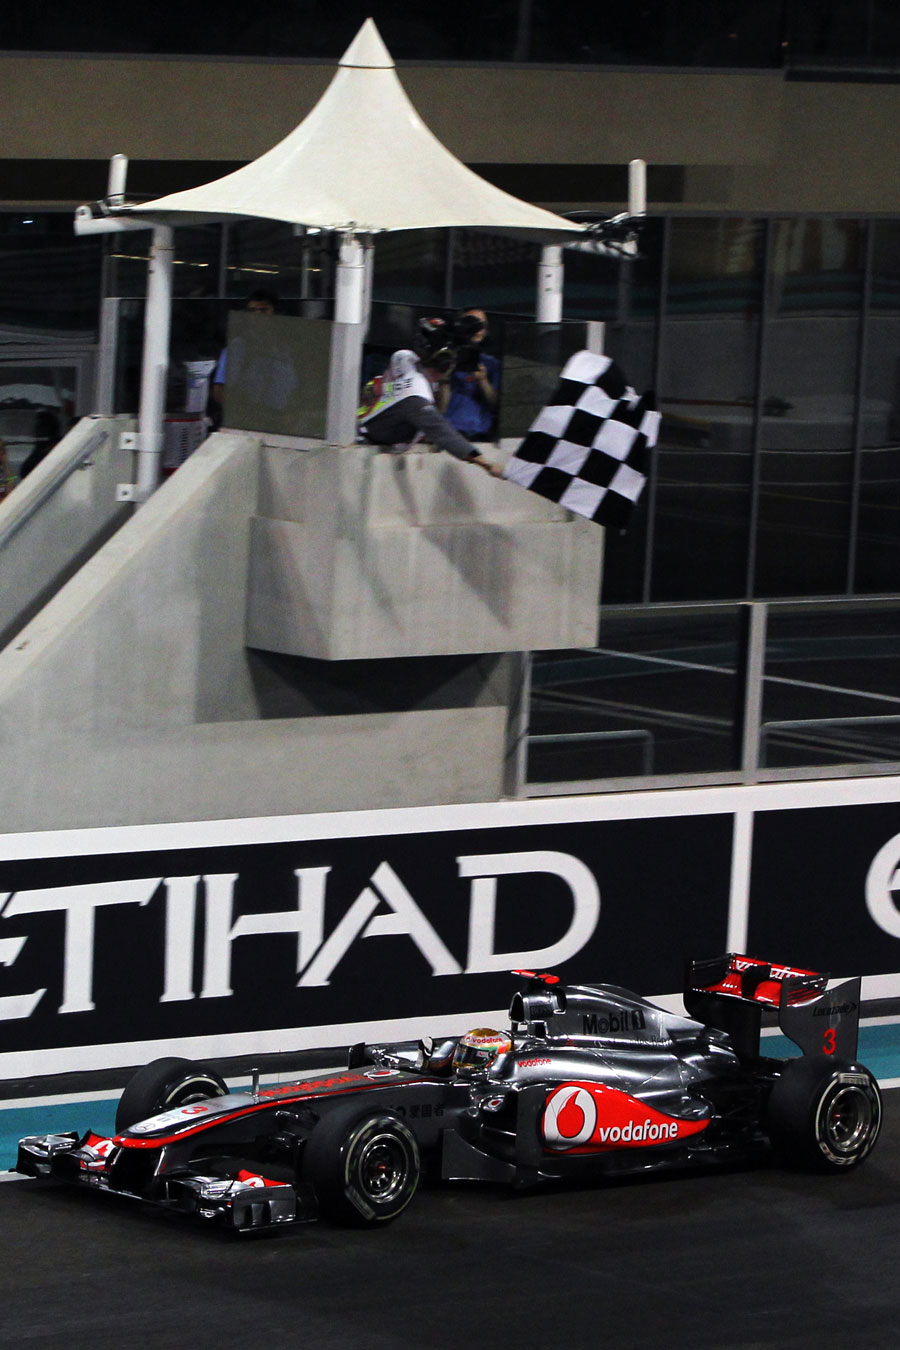 Lewis Hamilton celebrates as he takes the chequered flag